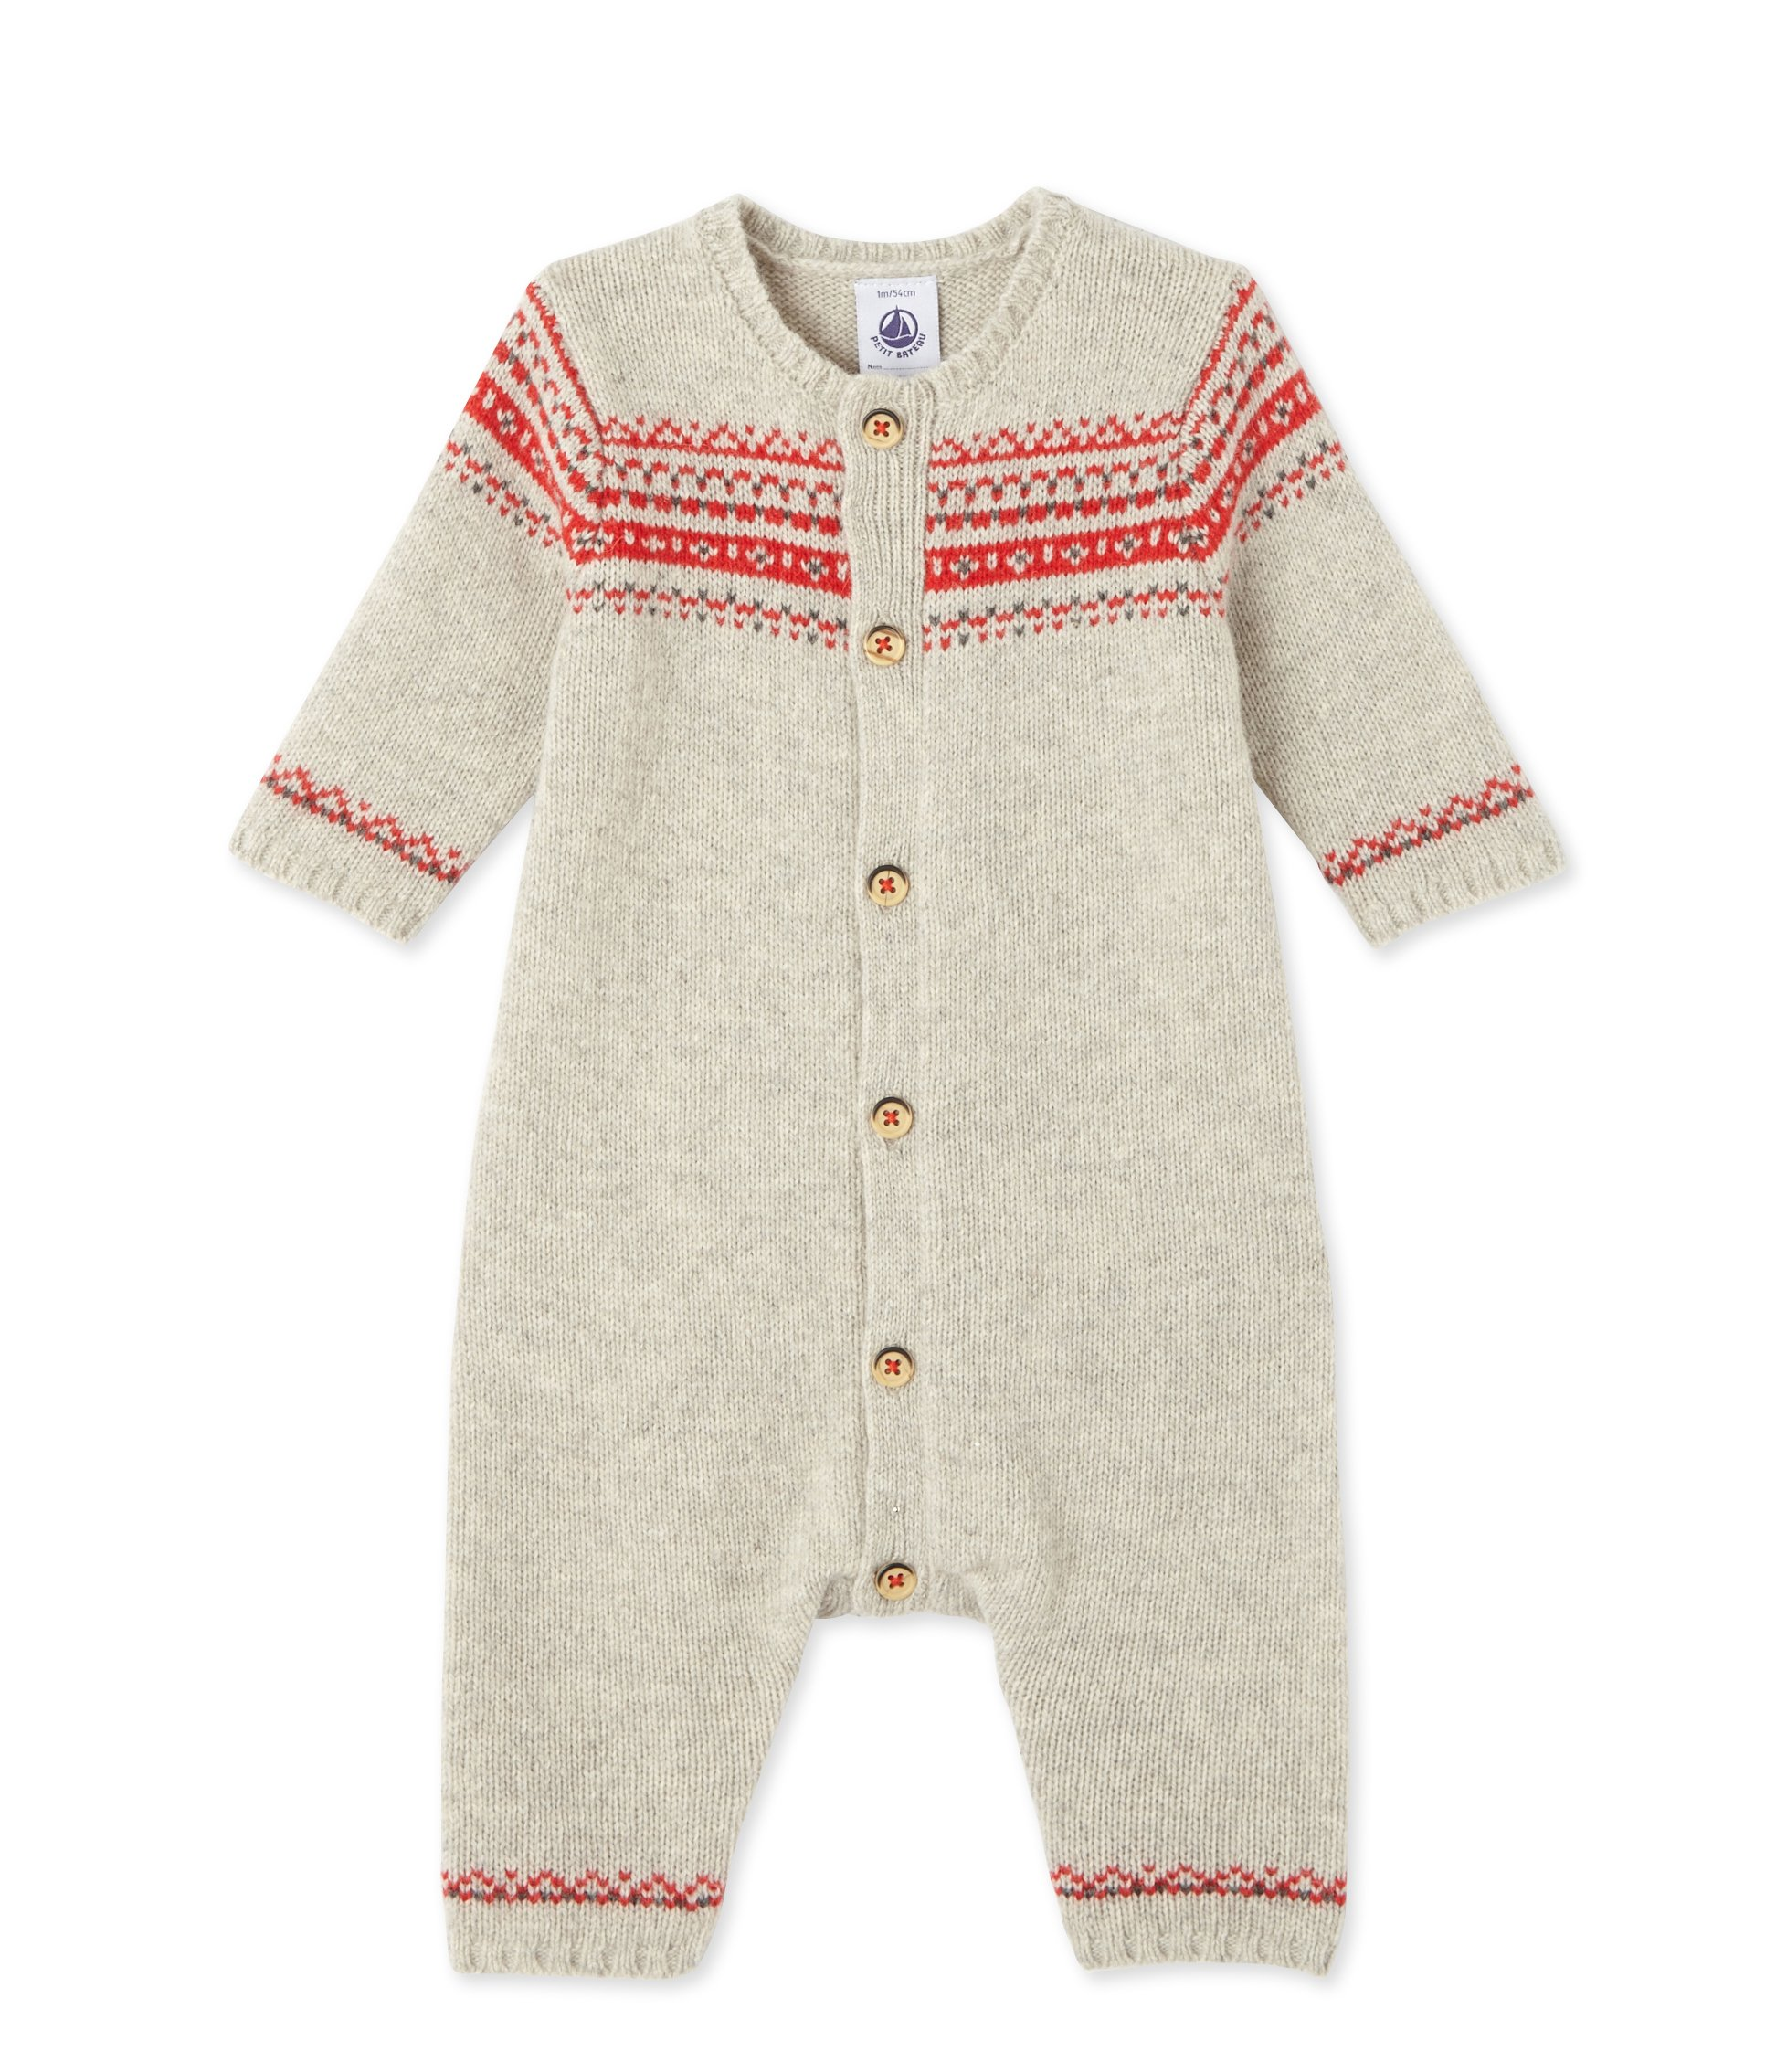 Petit Bateau Romper with Jacquard, Beige/Red, 0-3 Months Baby